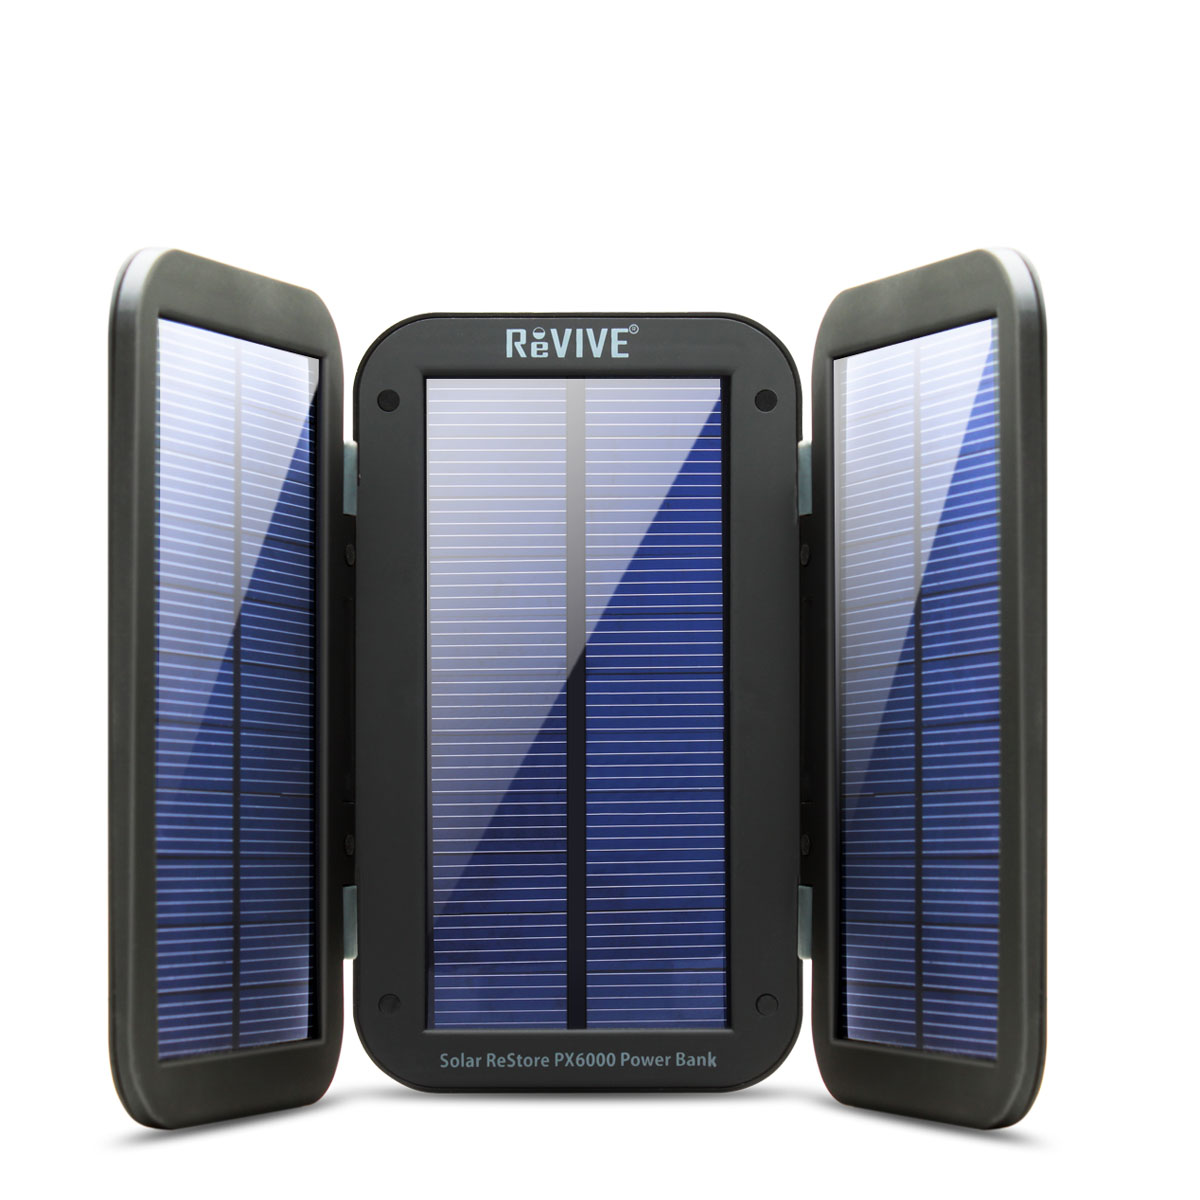 Revive Solar Restore Px6000 Power Bank Charger Amp Usb Rechargeable Battery Pack Ebay